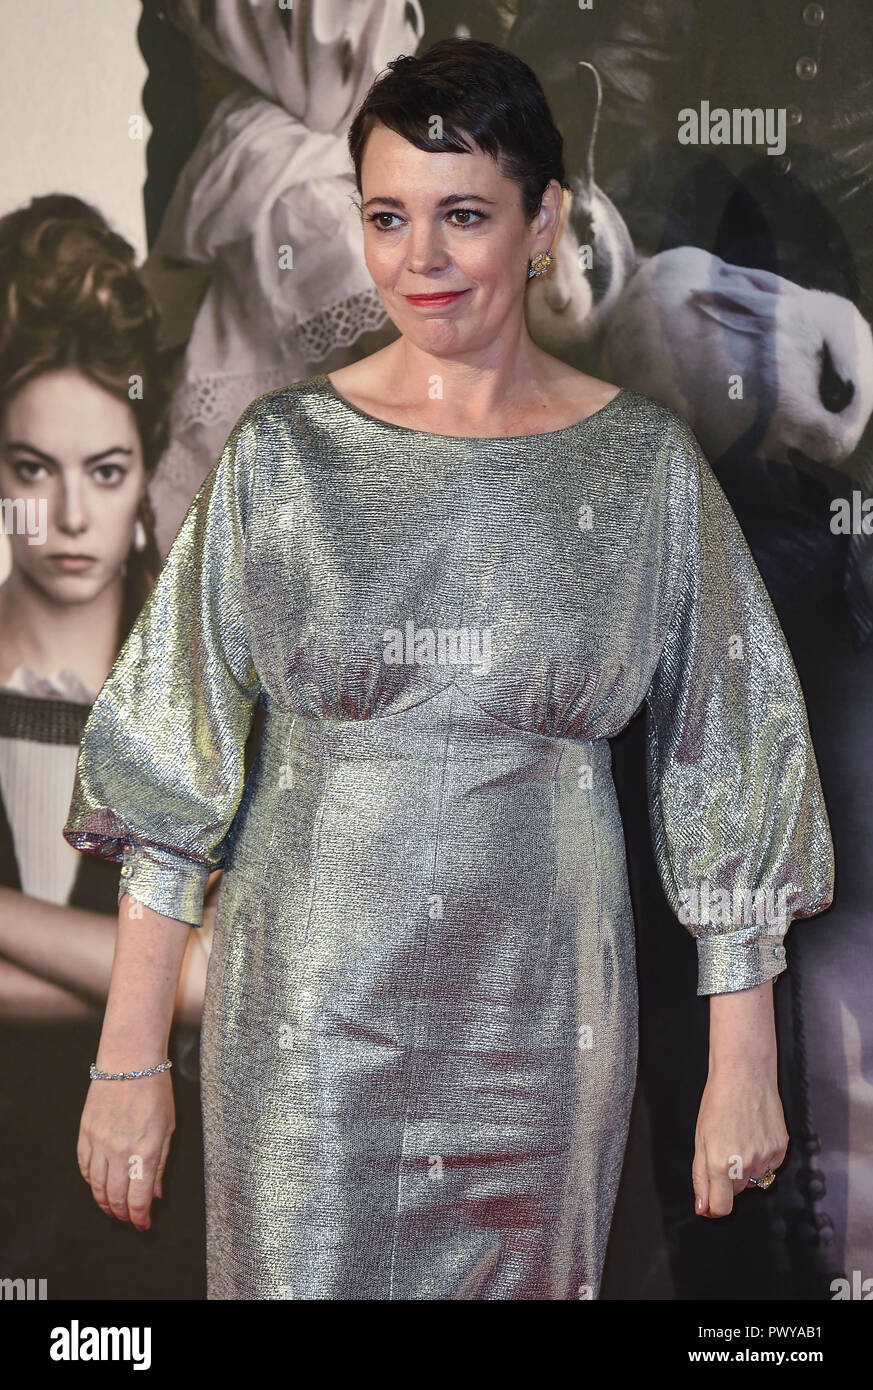 London, UK. 18th Oct, 2018. Olivia Colman attends the UK Premiere of 'The Favourite' & American Express Gala at the 62nd BFI London Film Festival. Credit: Gary Mitchell/SOPA Images/ZUMA Wire/Alamy Live News - Stock Image